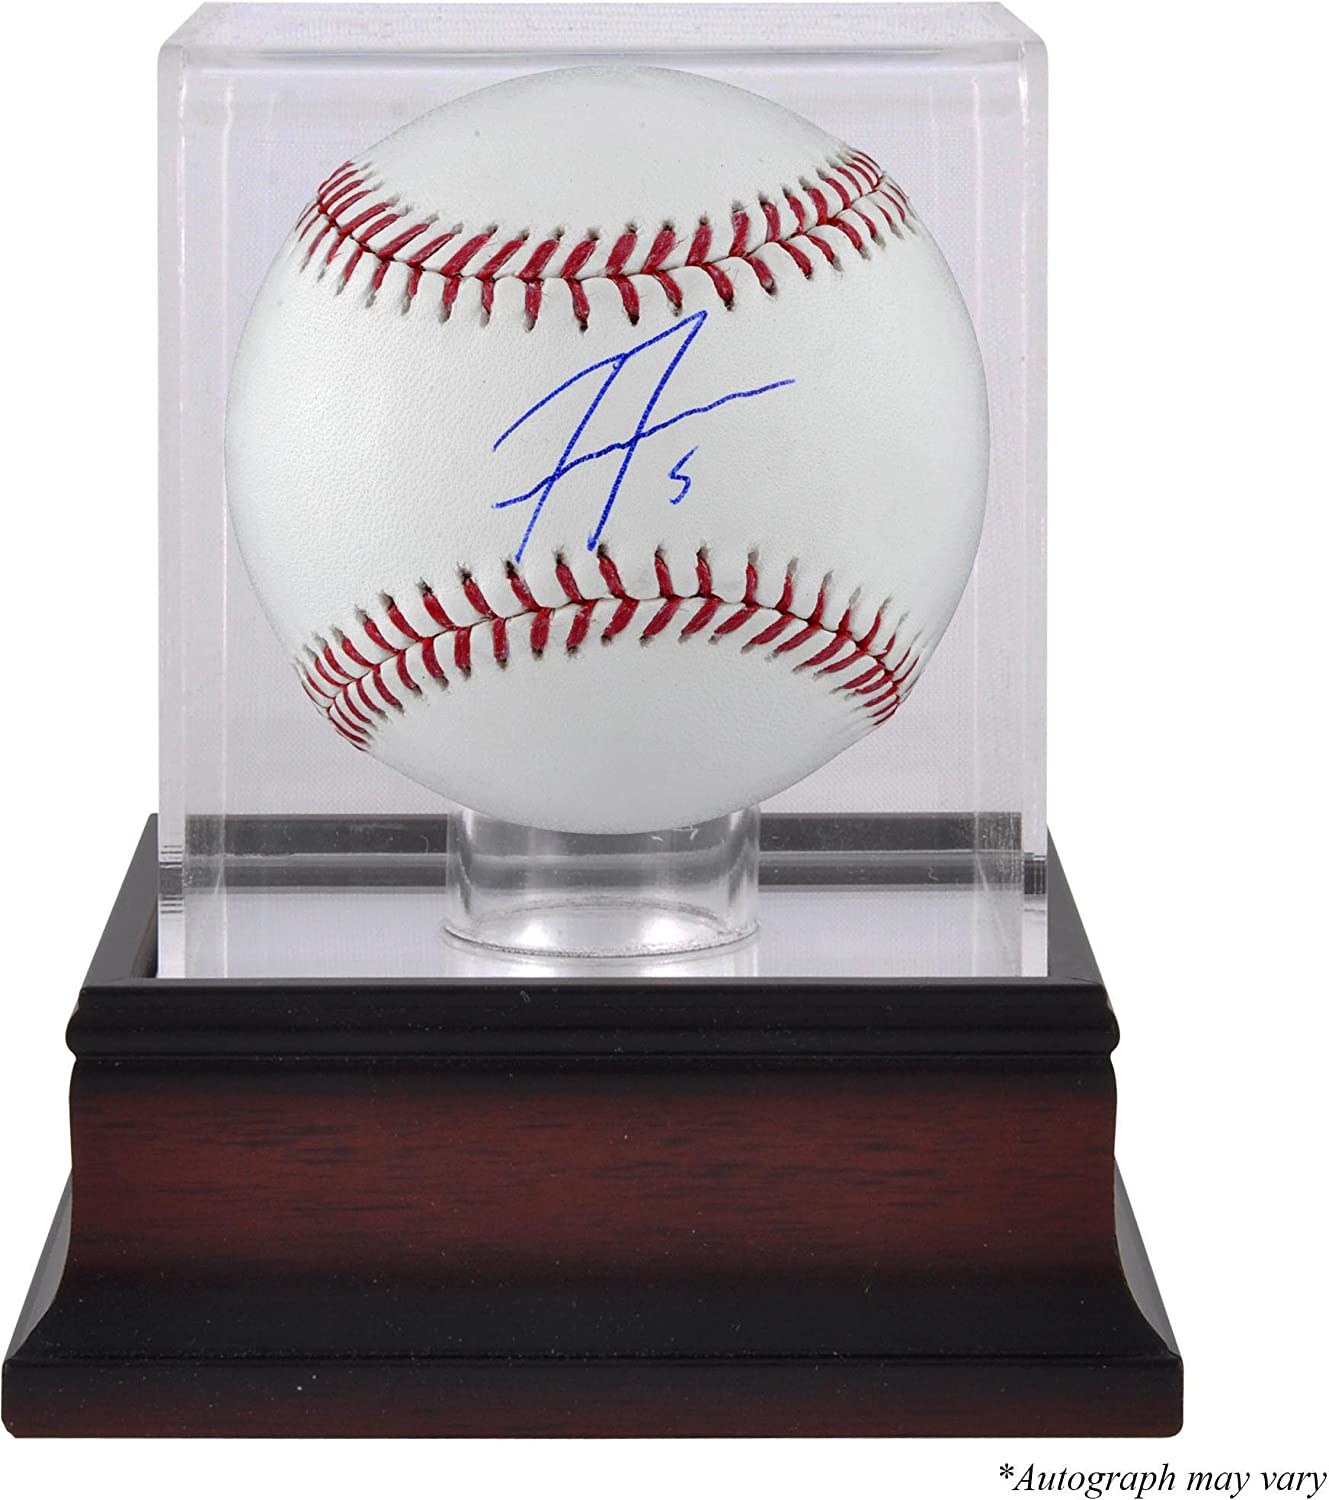 Freddie Freeman Atlanta Braves Autographed Baseball and Mahogany Baseball Display Case - Fanatics Authentic Certified